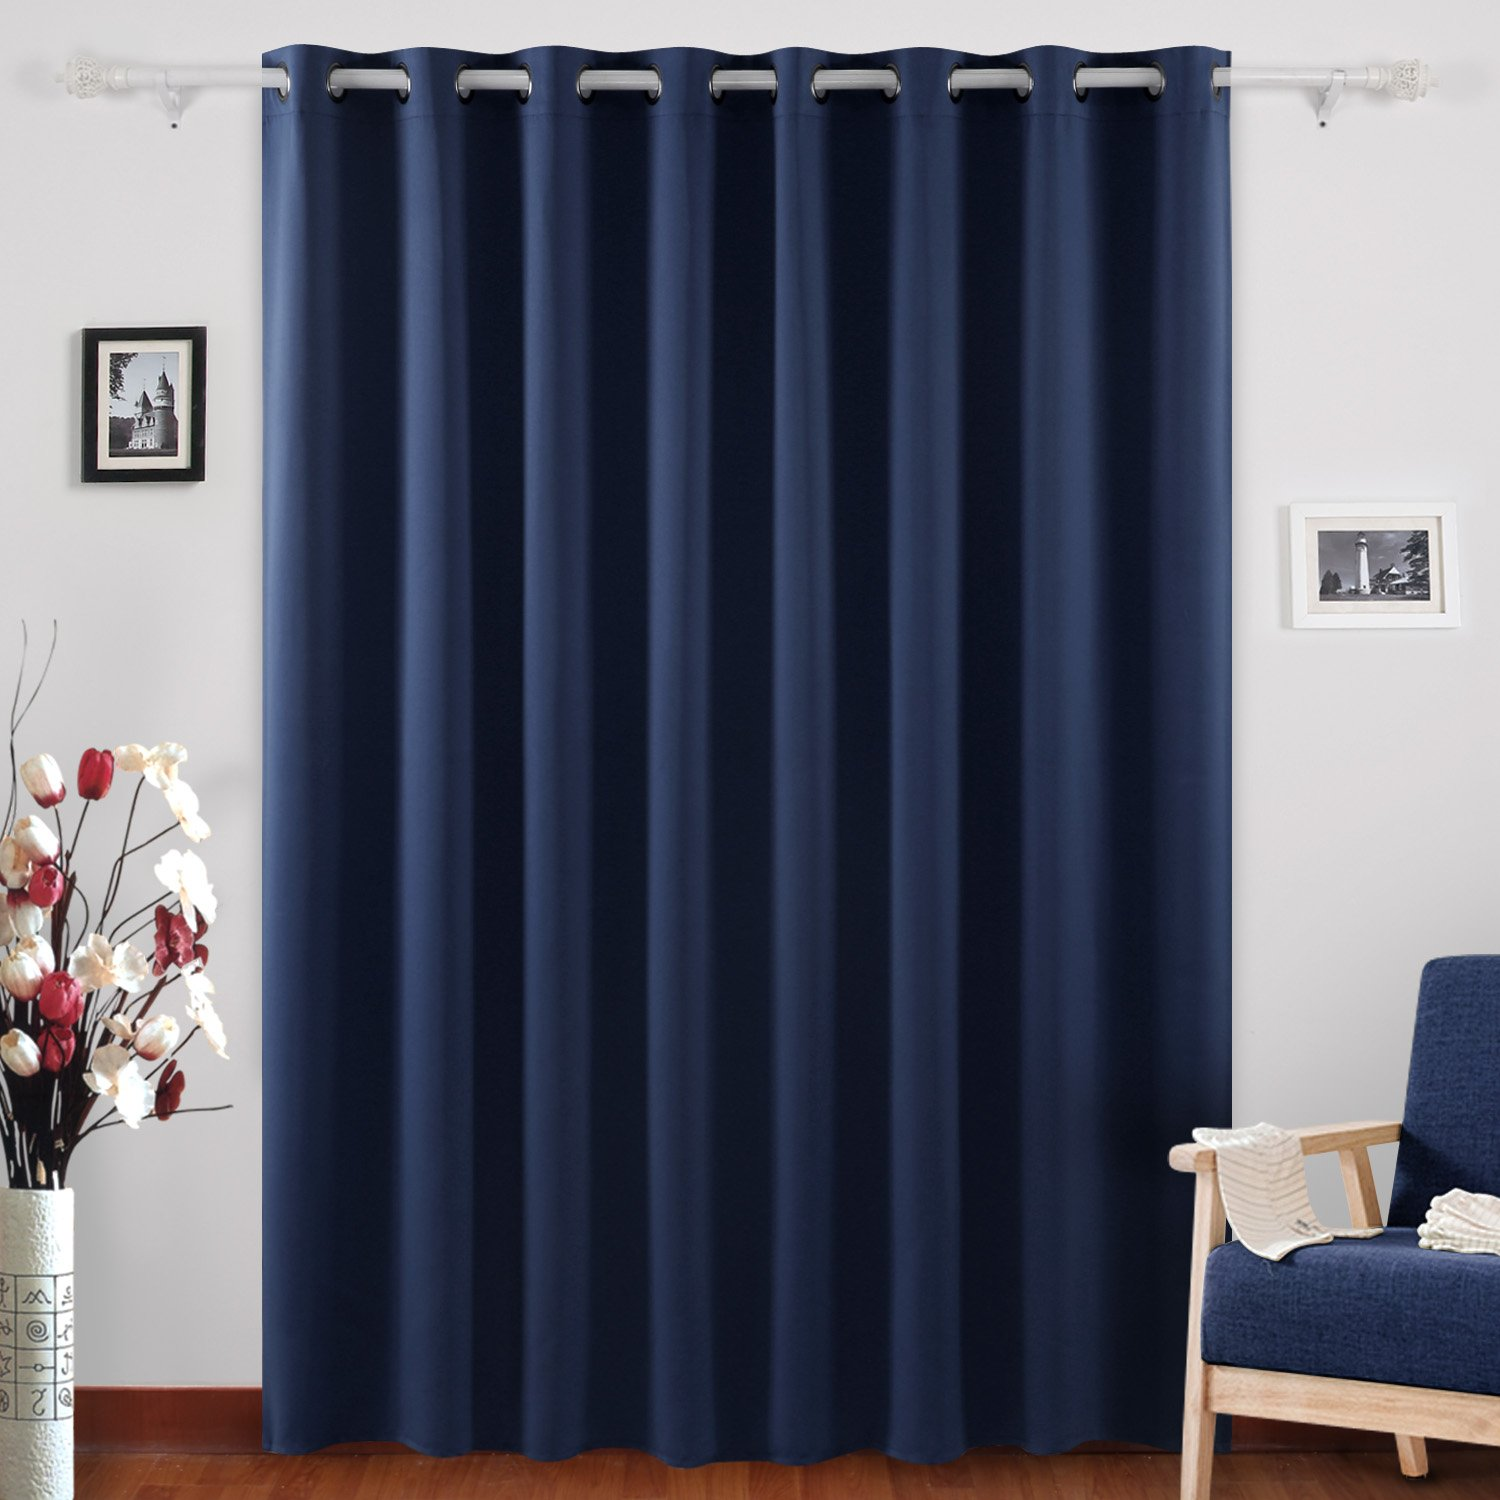 Deconovo Blackout Curtains Thermal Insulated Wide Width Curtains Grommet Room Darkening Curtains Navy Blue